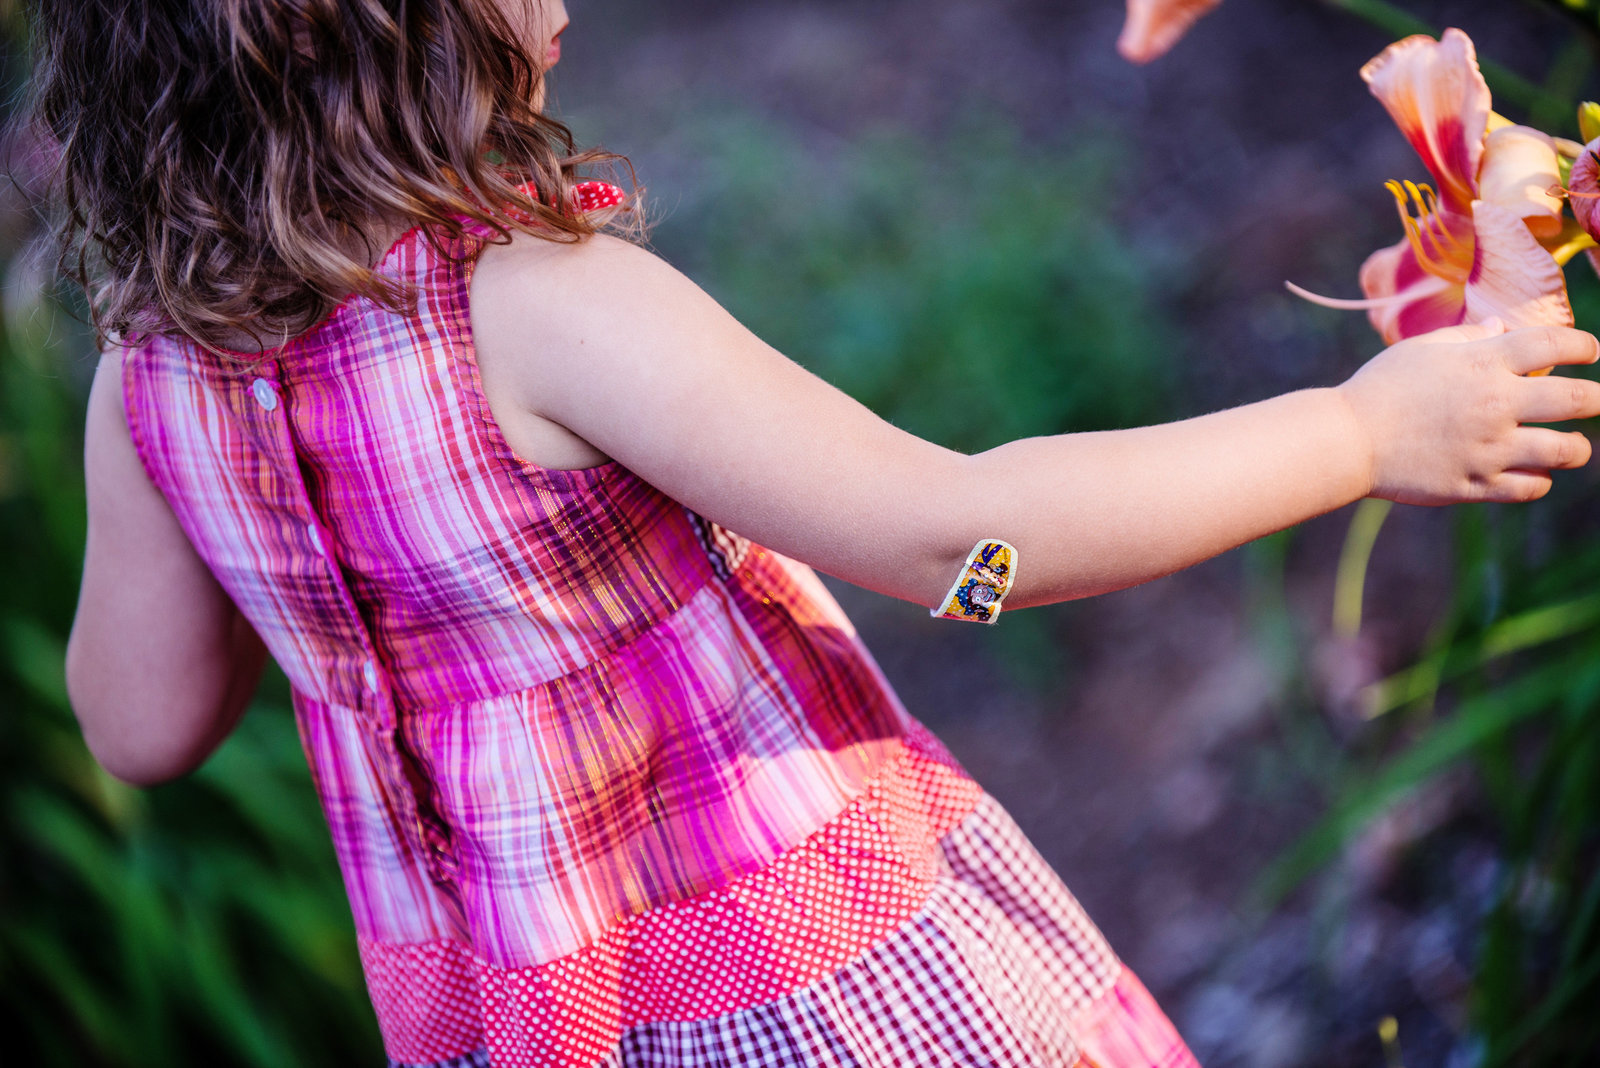 a little girl picks a flower with a band-aid on her elbow